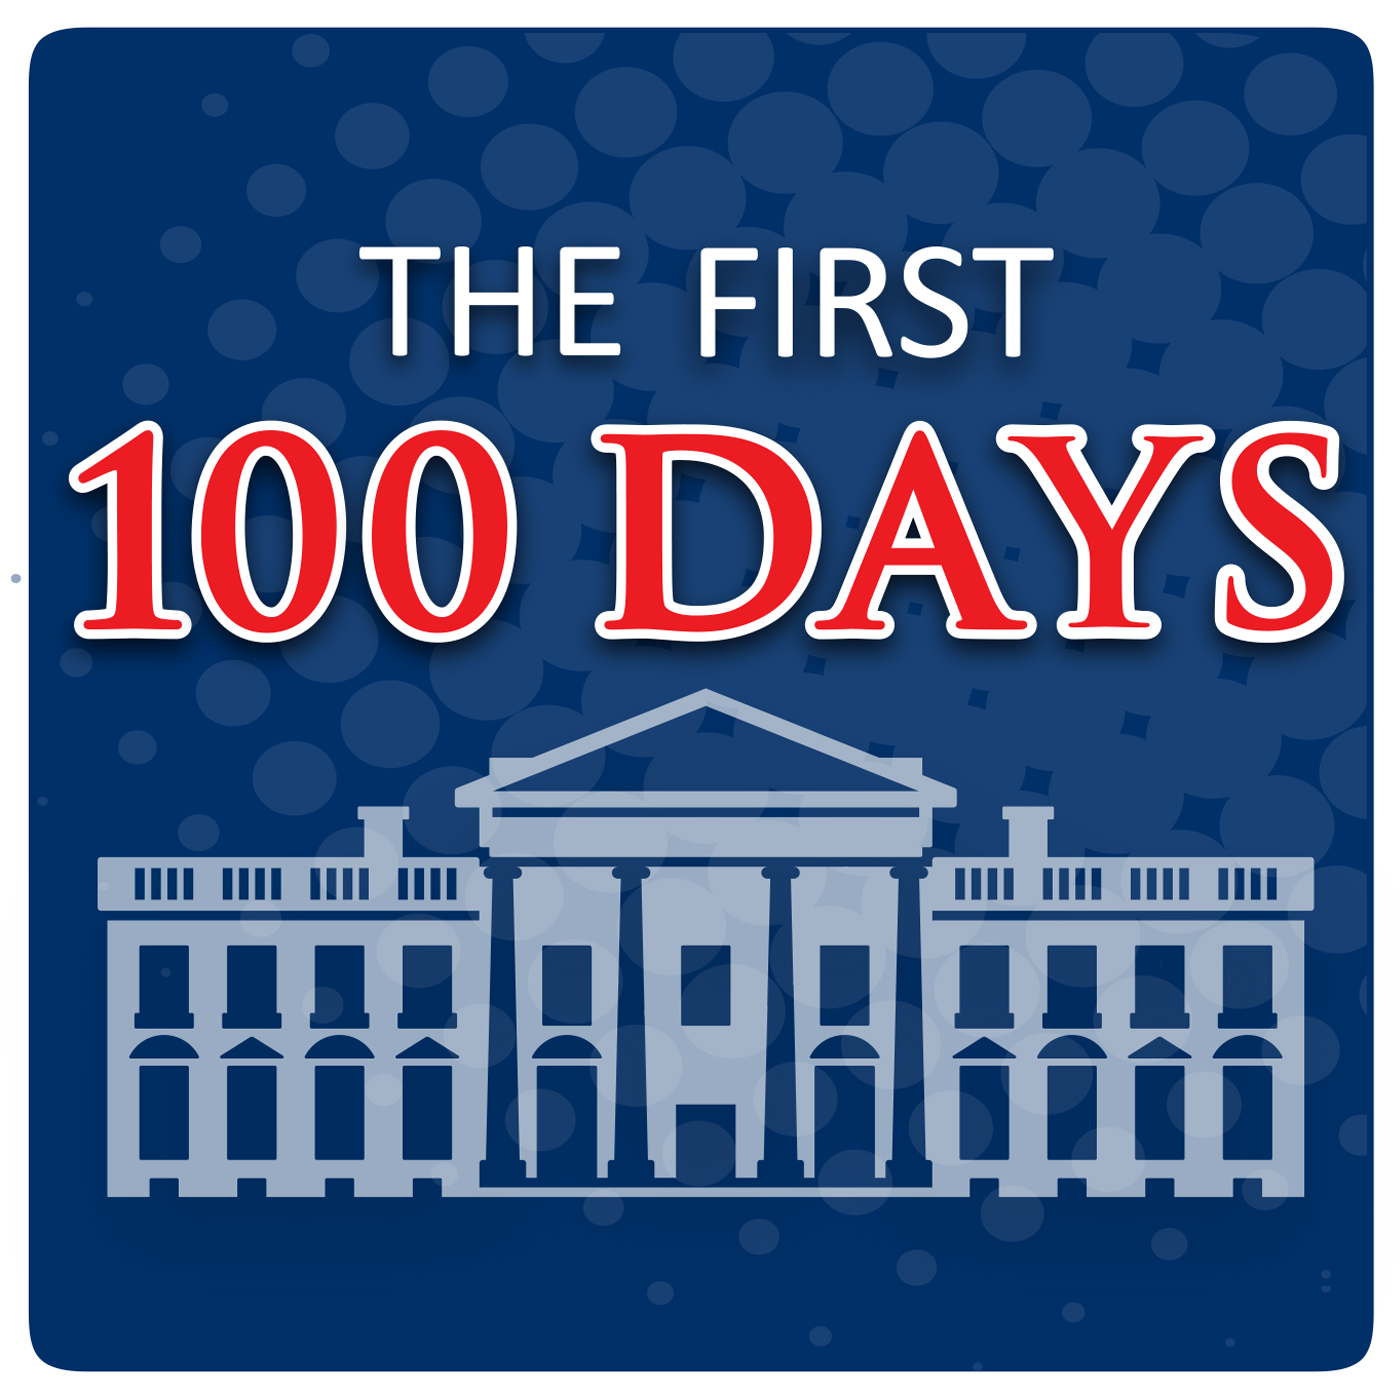 First 100 Days: President Trump's Energy Independence Executive Order – What Changes Can Companies Expect, and When?